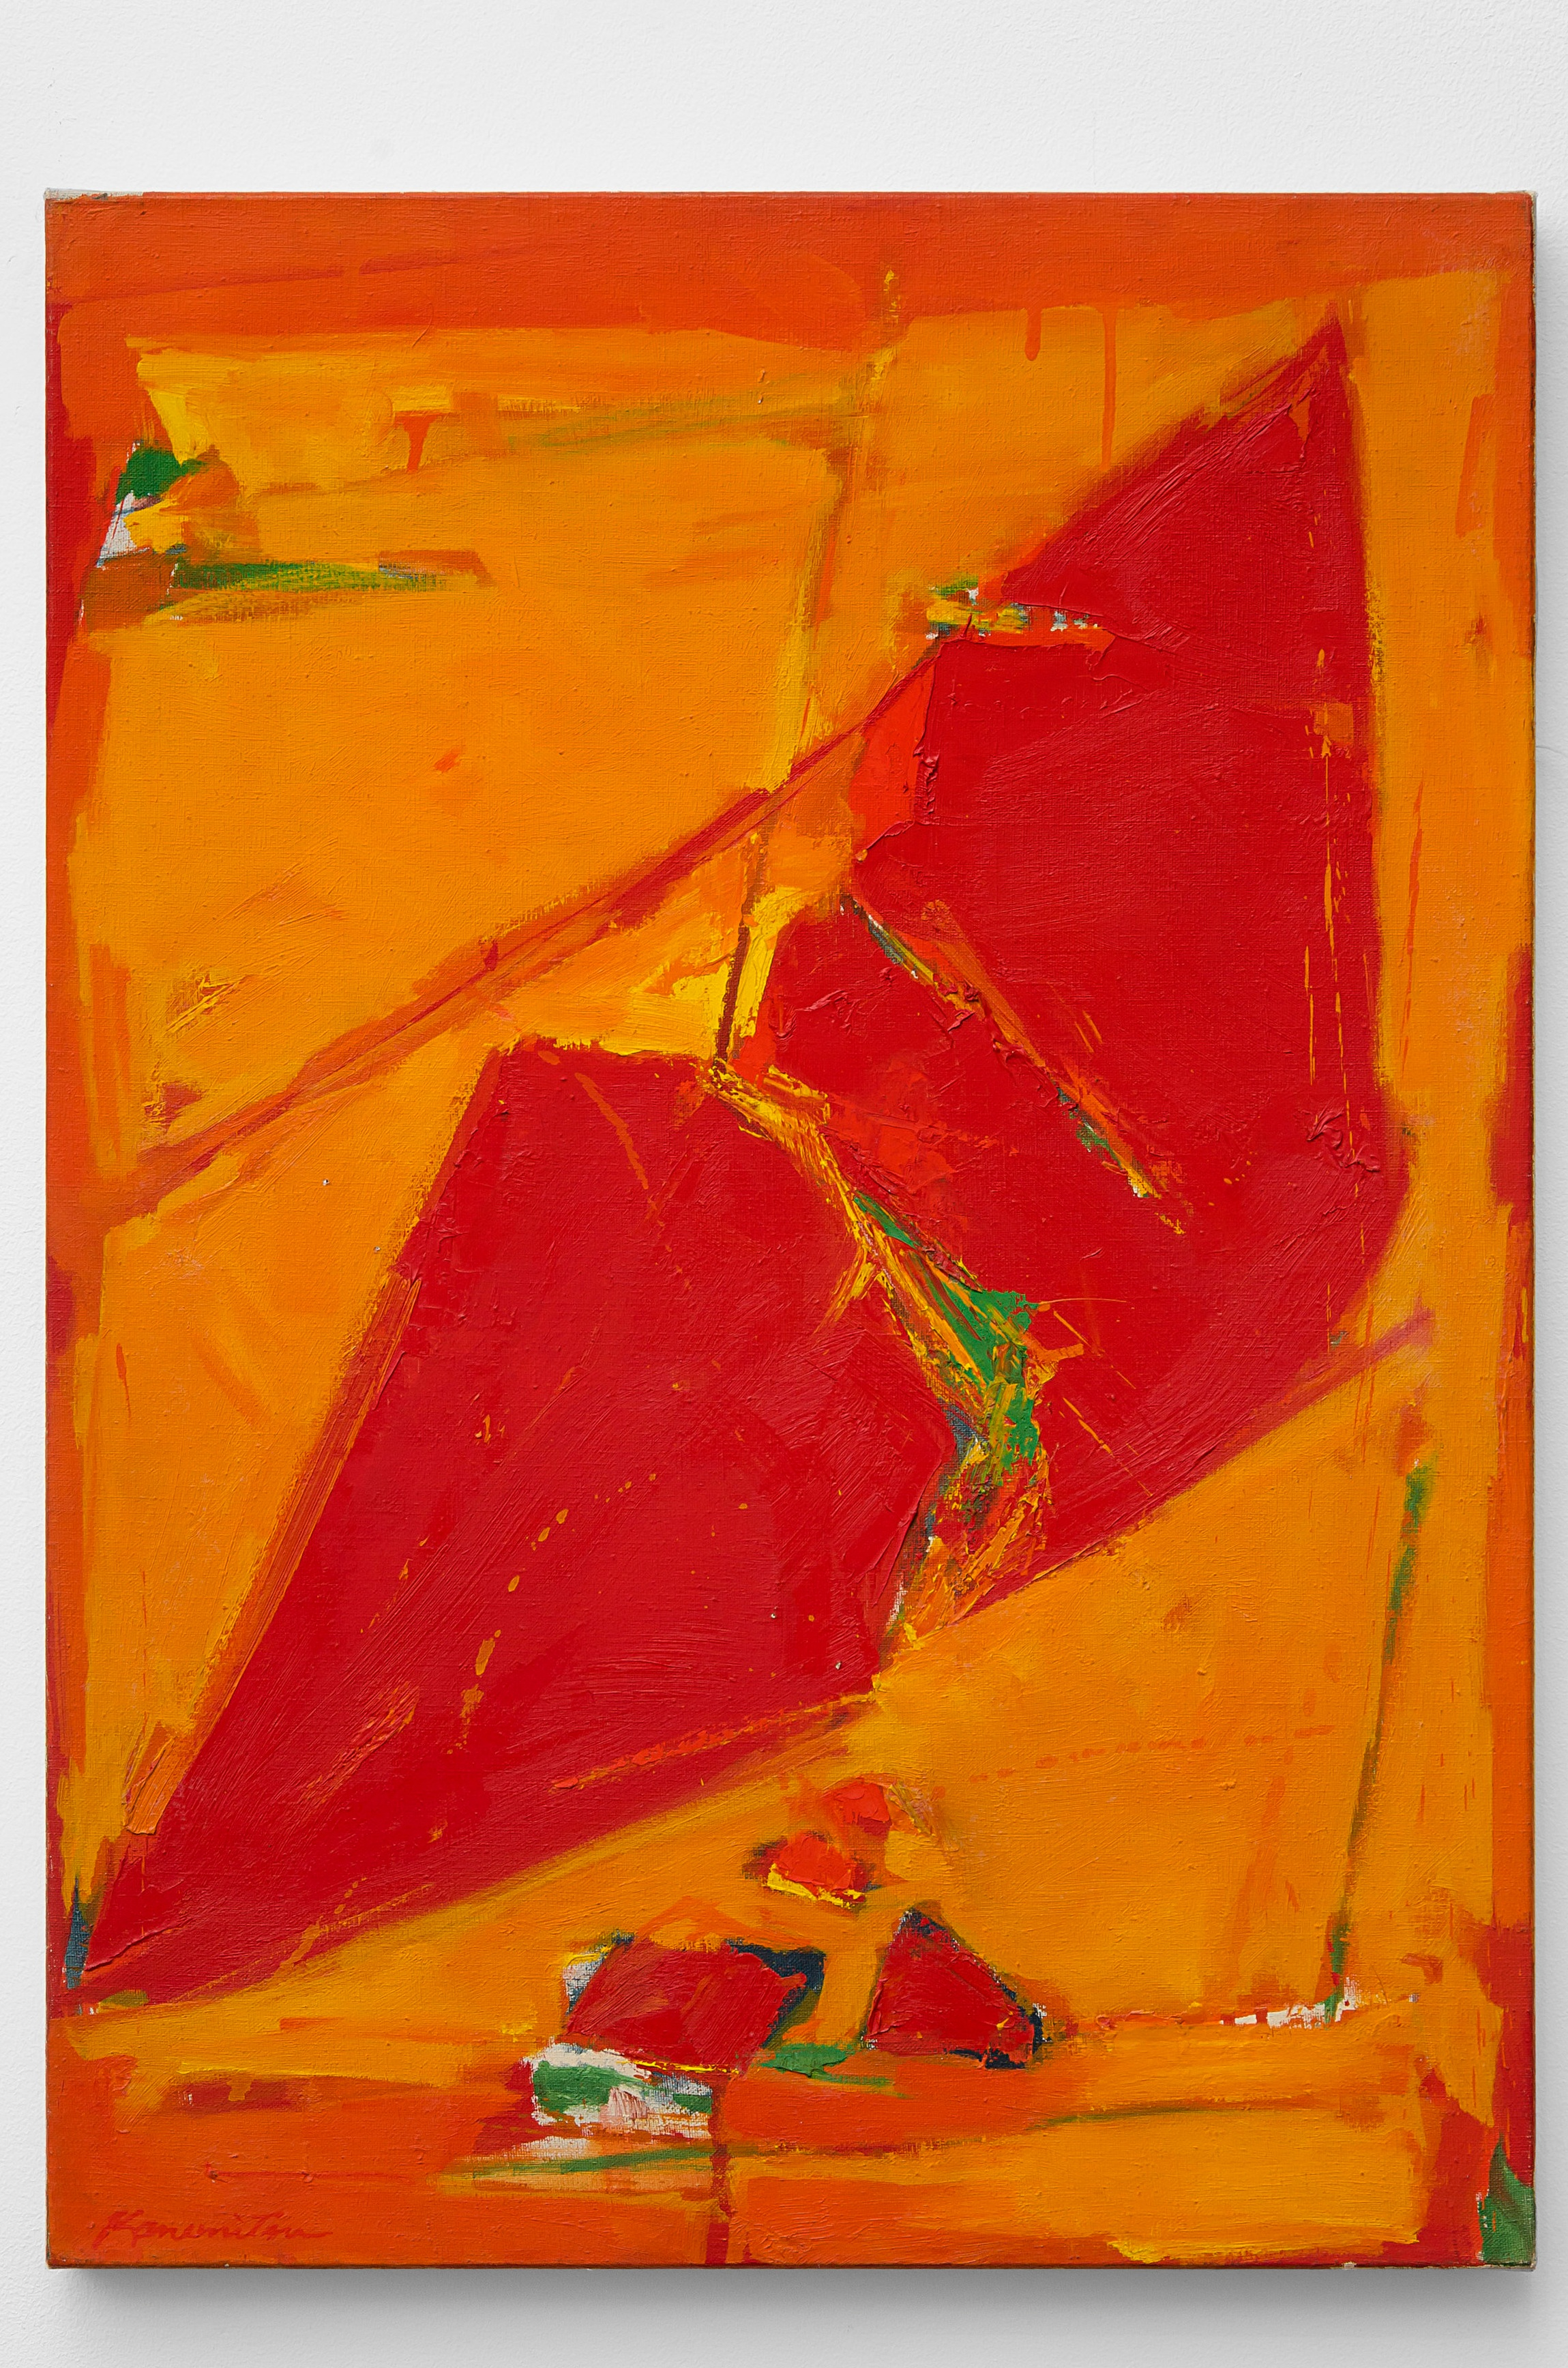 Untitled (Red)   1960  acrylic on canvas  28 x 20 inches, 71.1 x 50.8